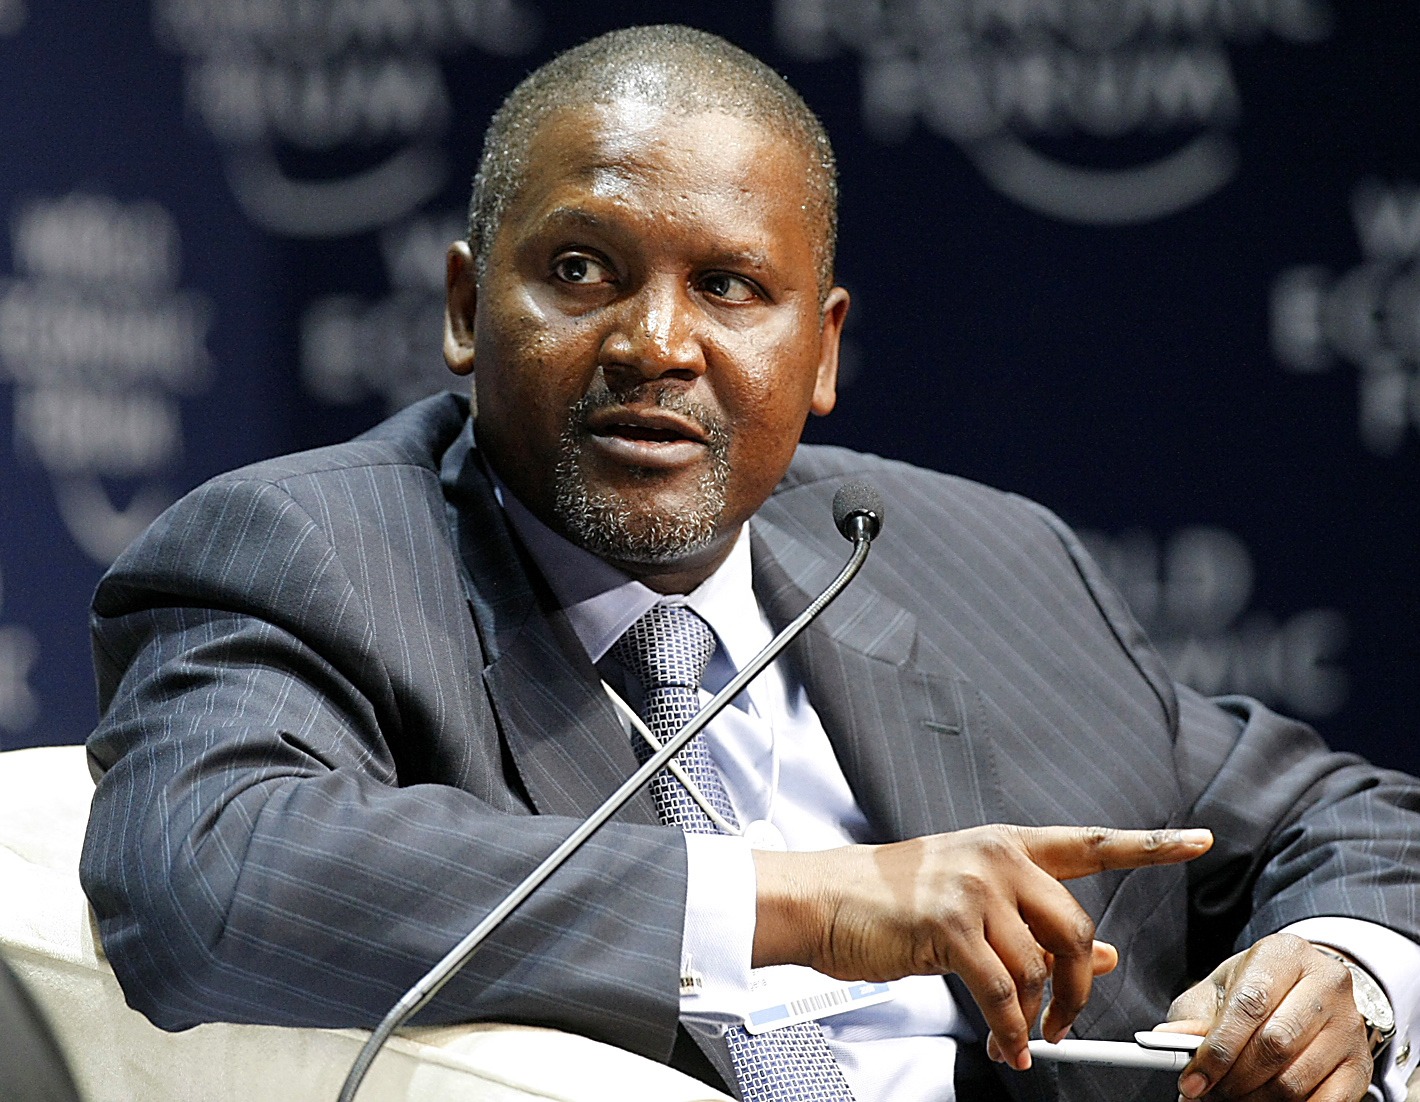 Richest CEOs In The World - 10. Aliko Dangote